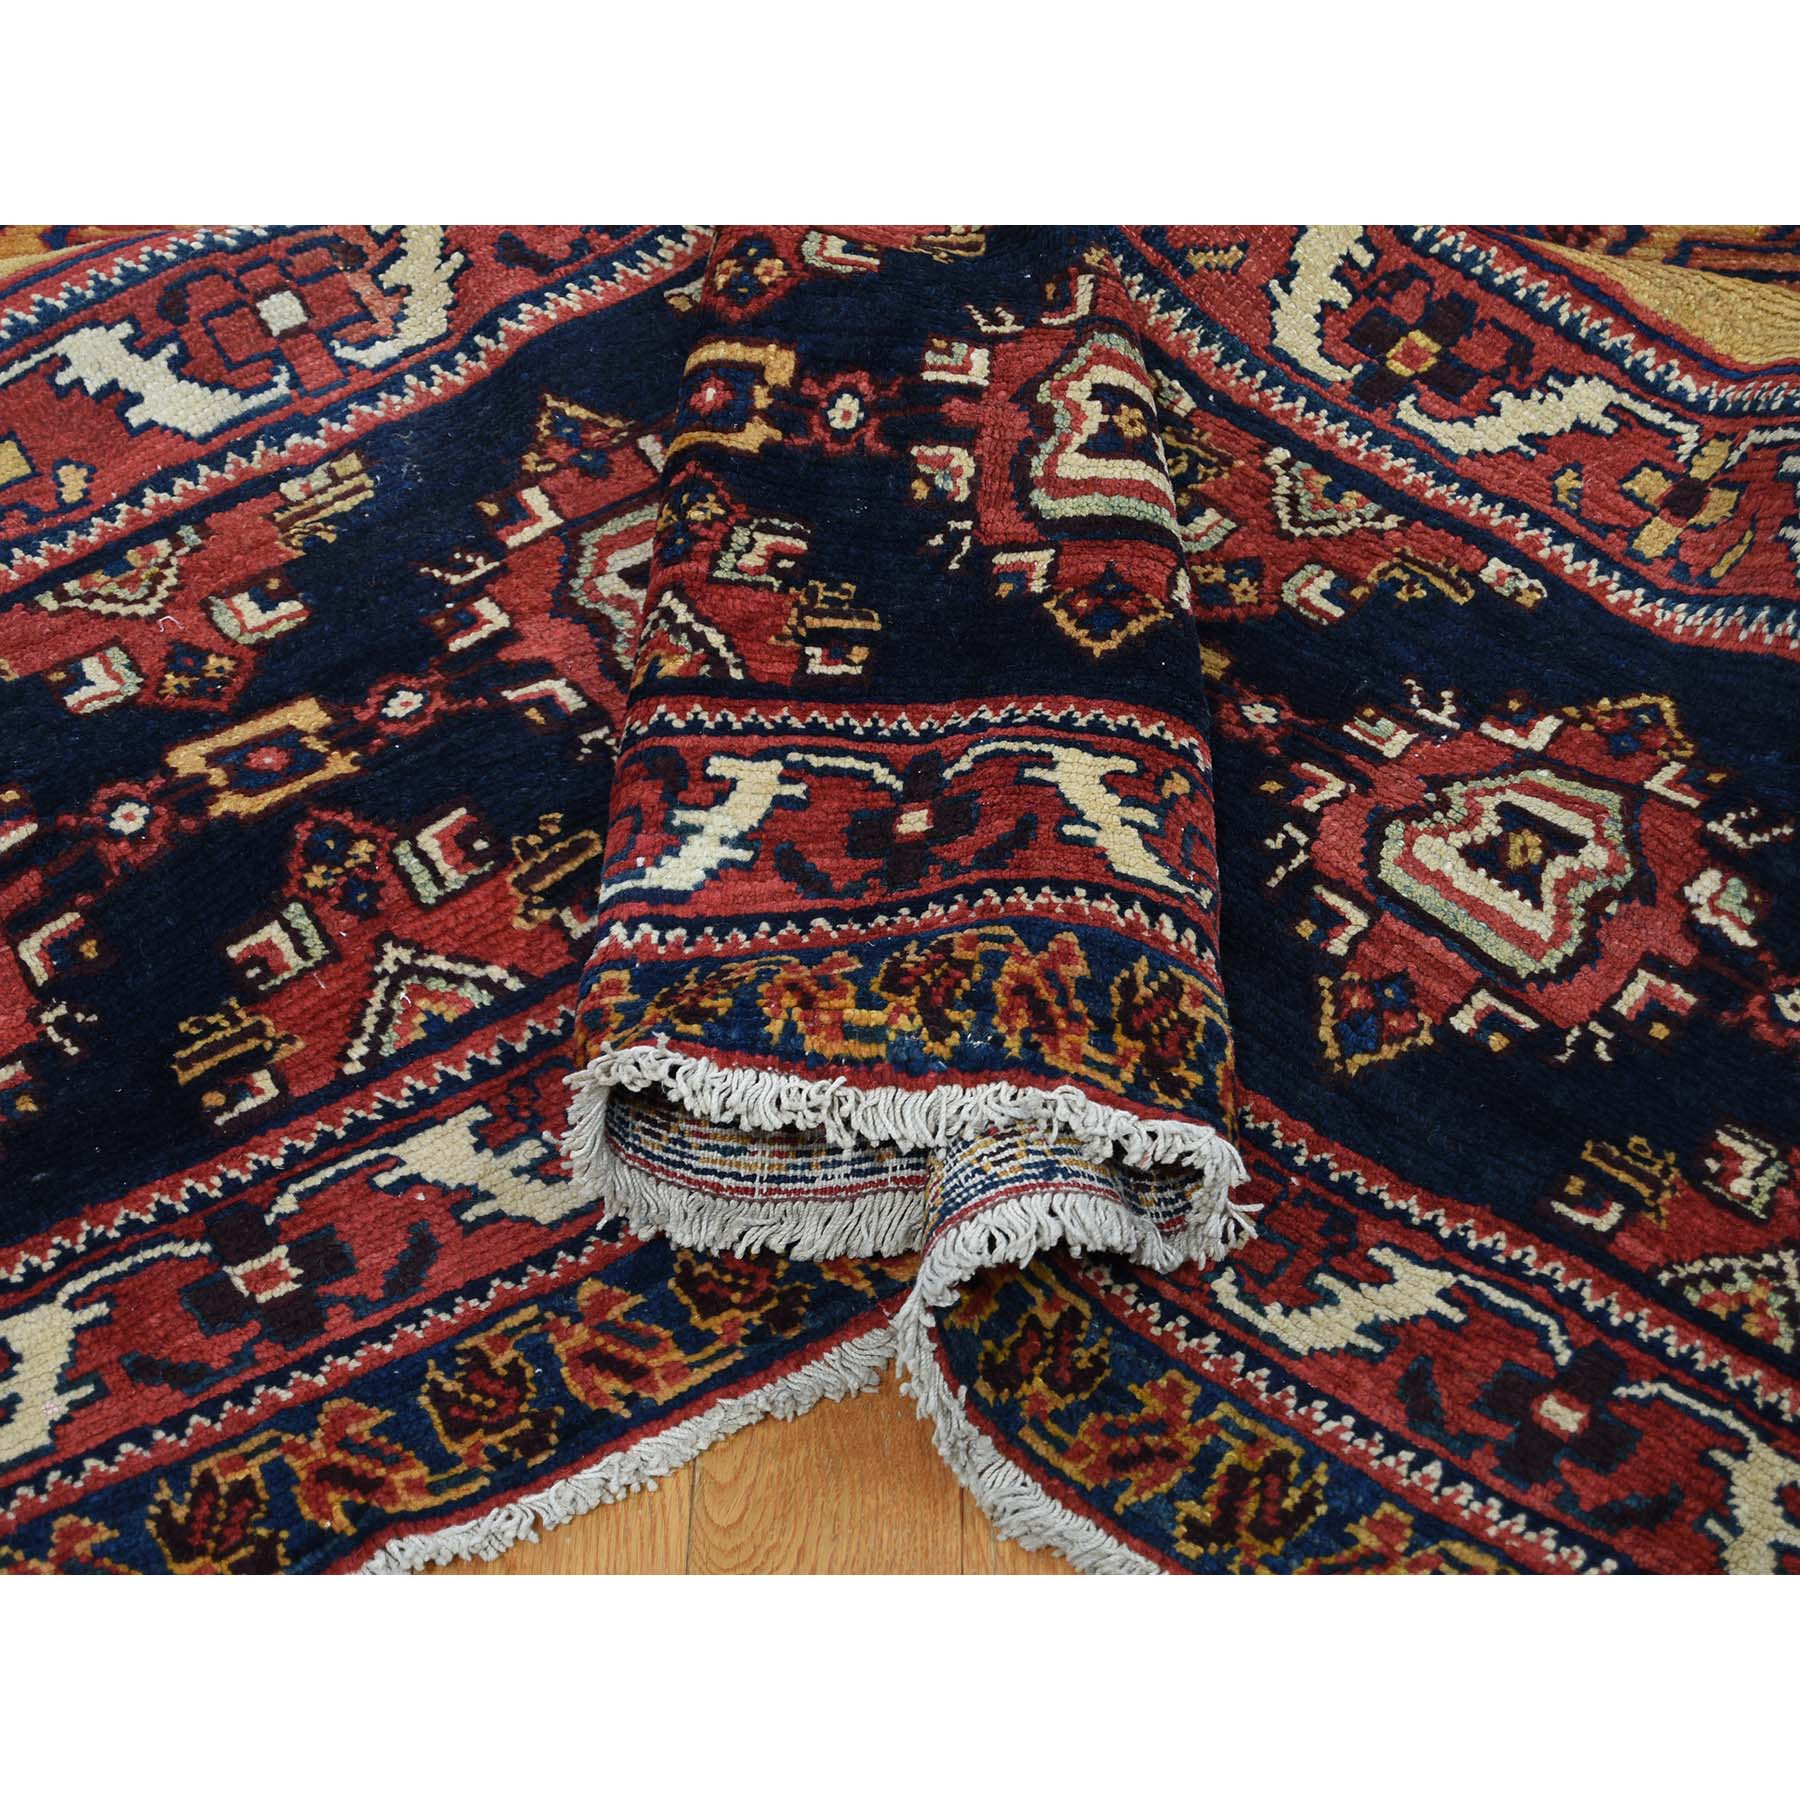 10-4 x17-7  Antique Persian Gallery Size Bakhtiari Pure Wool Hand-Knotted Oriental Rug